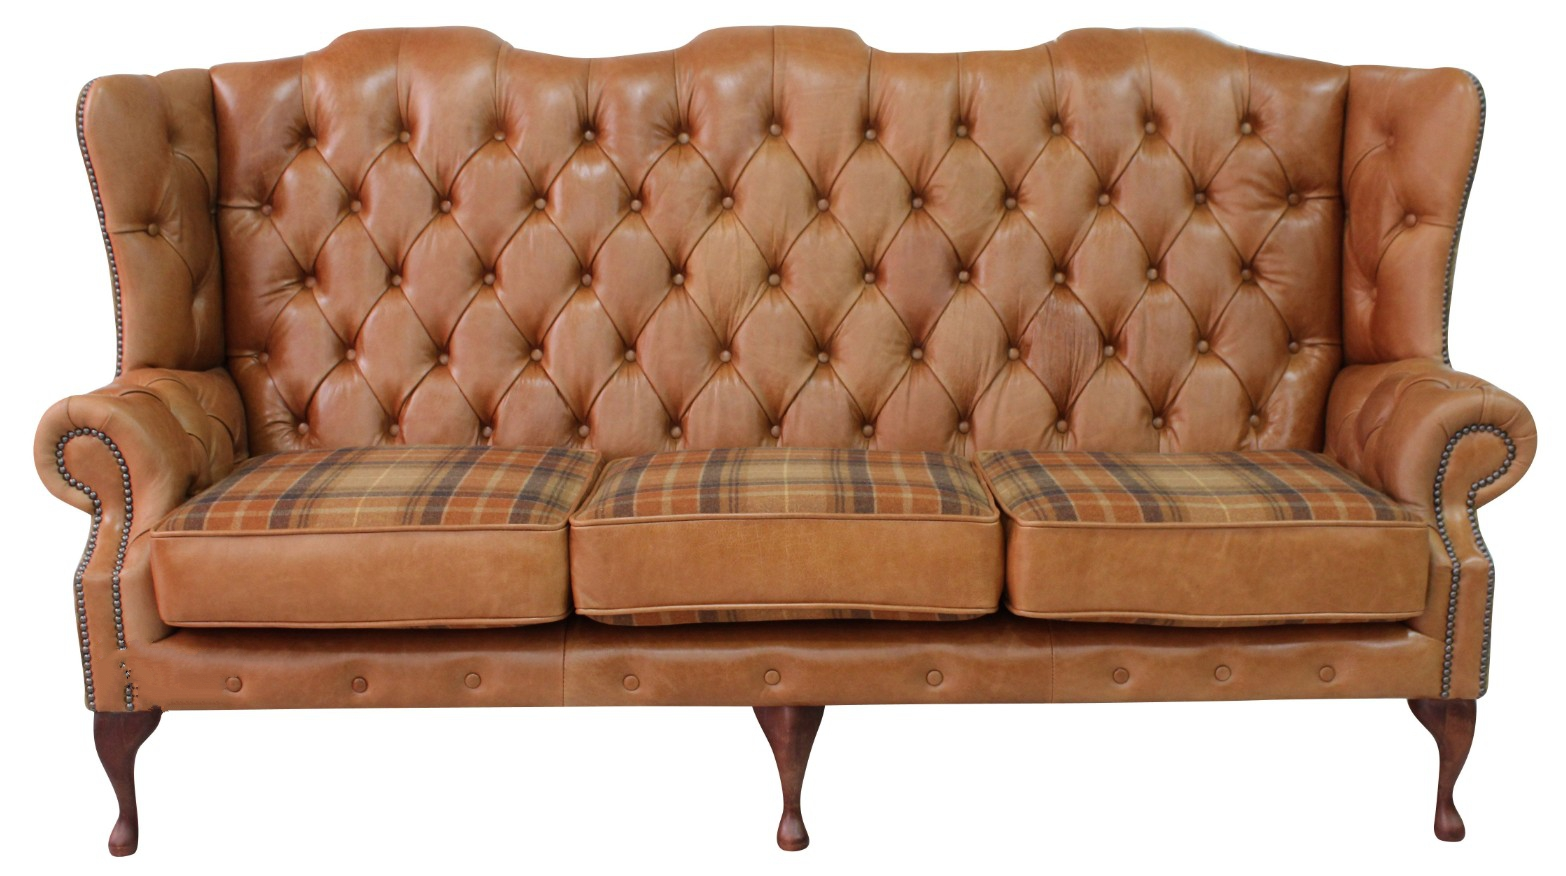 e90e3bc49eba2 Chesterfield 3 Seater Queen Anne High Back Sofa Old English Tan Leather  Vintage Caramel Wool